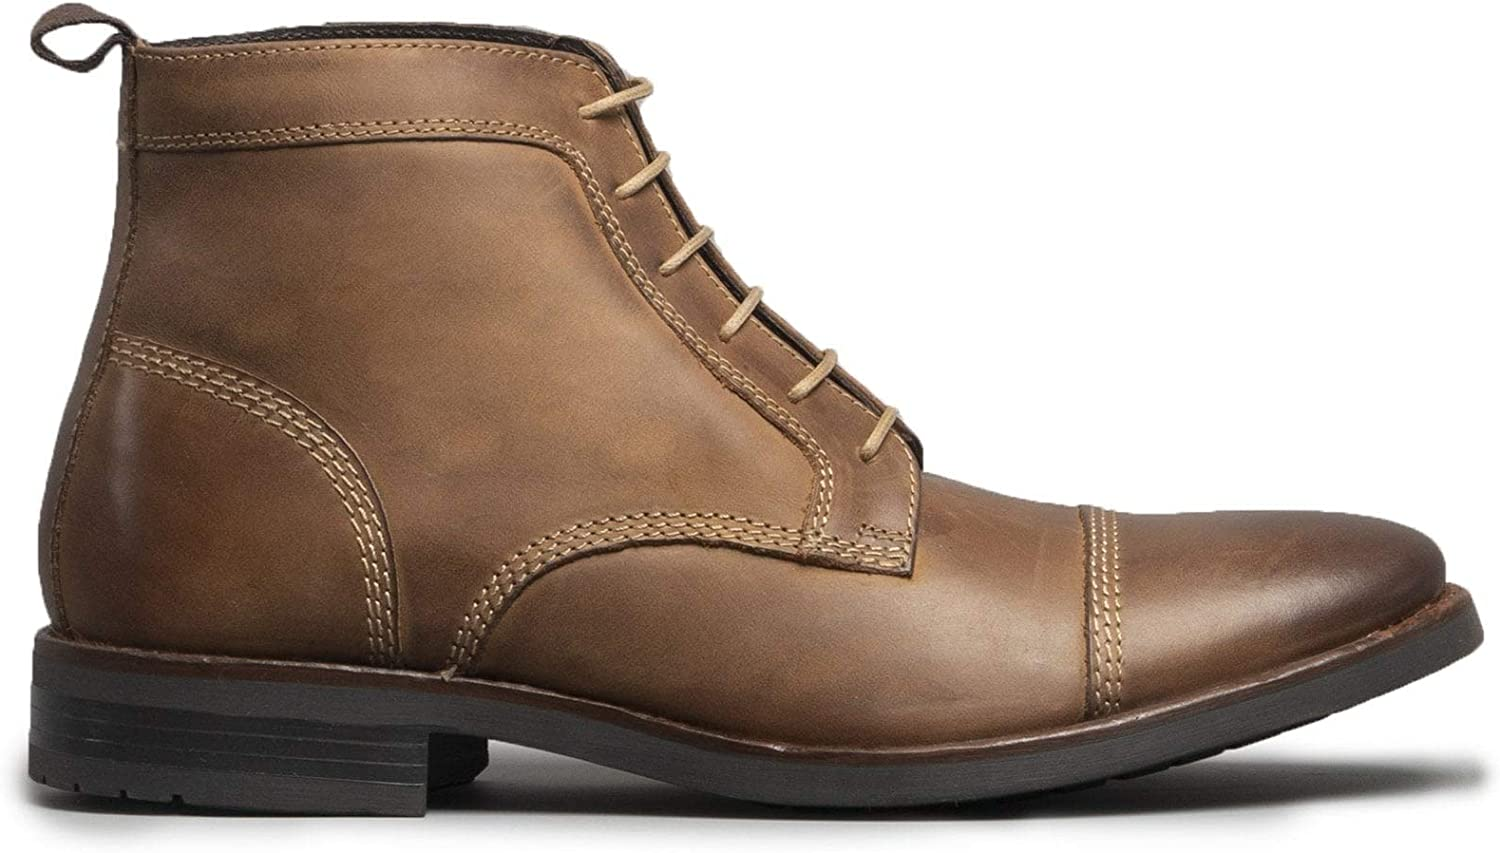 Ikon Marlow Mens Leather Derby Boots Tan